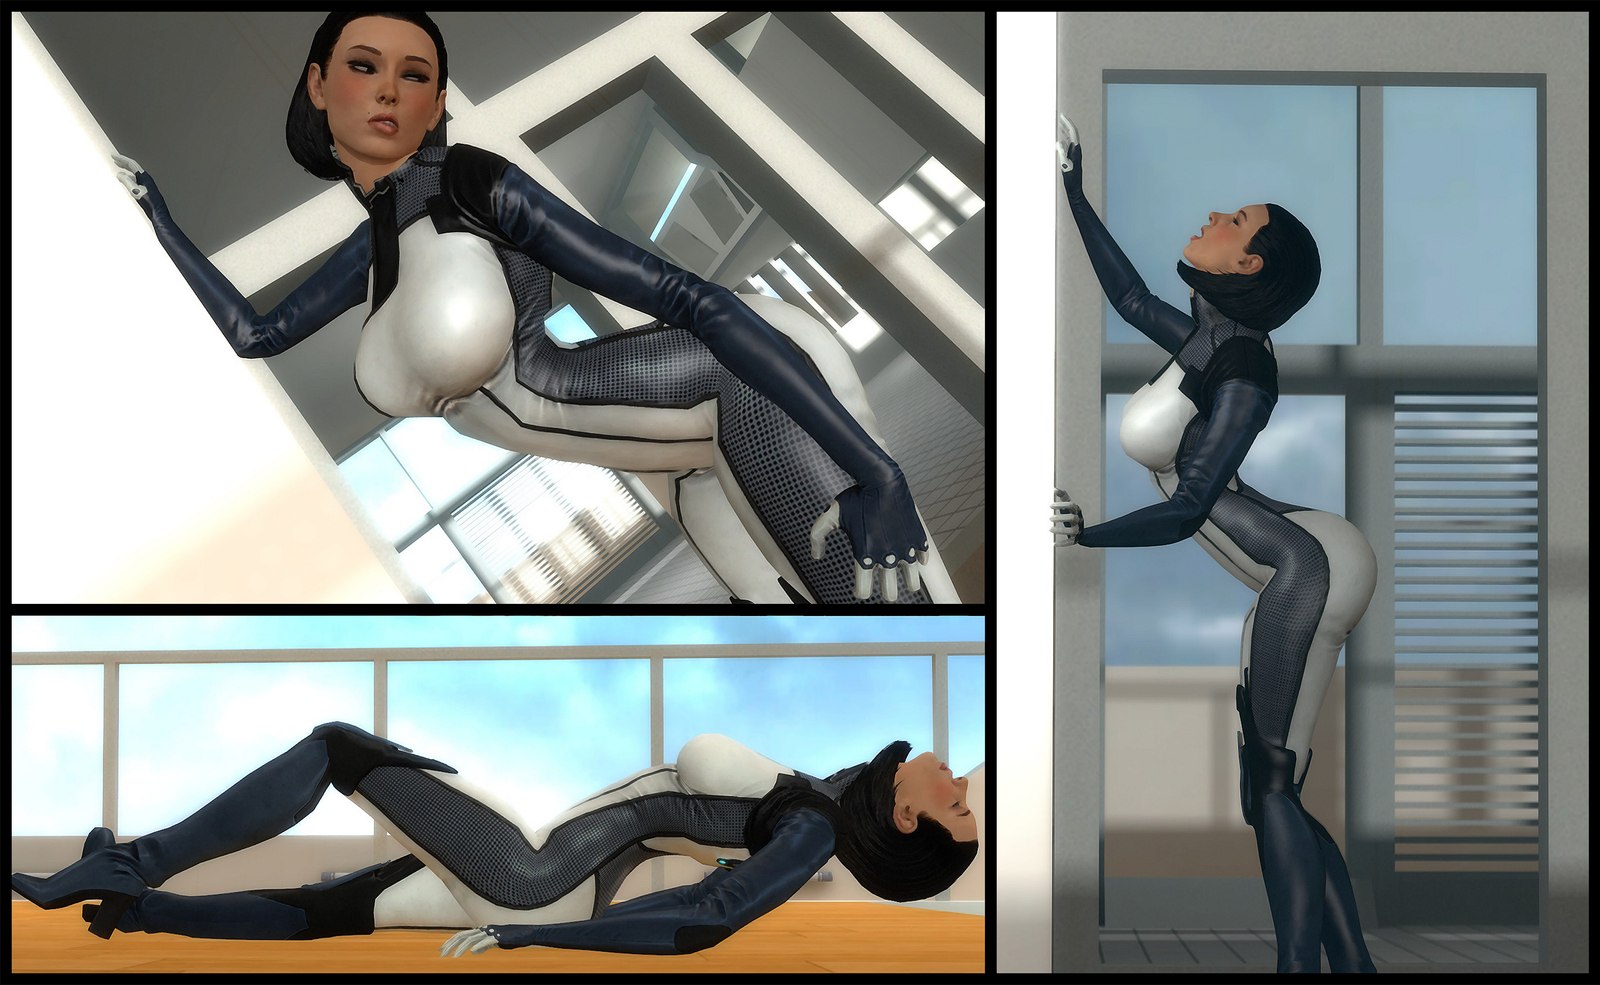 Mass effect dr eva porn naked pictures